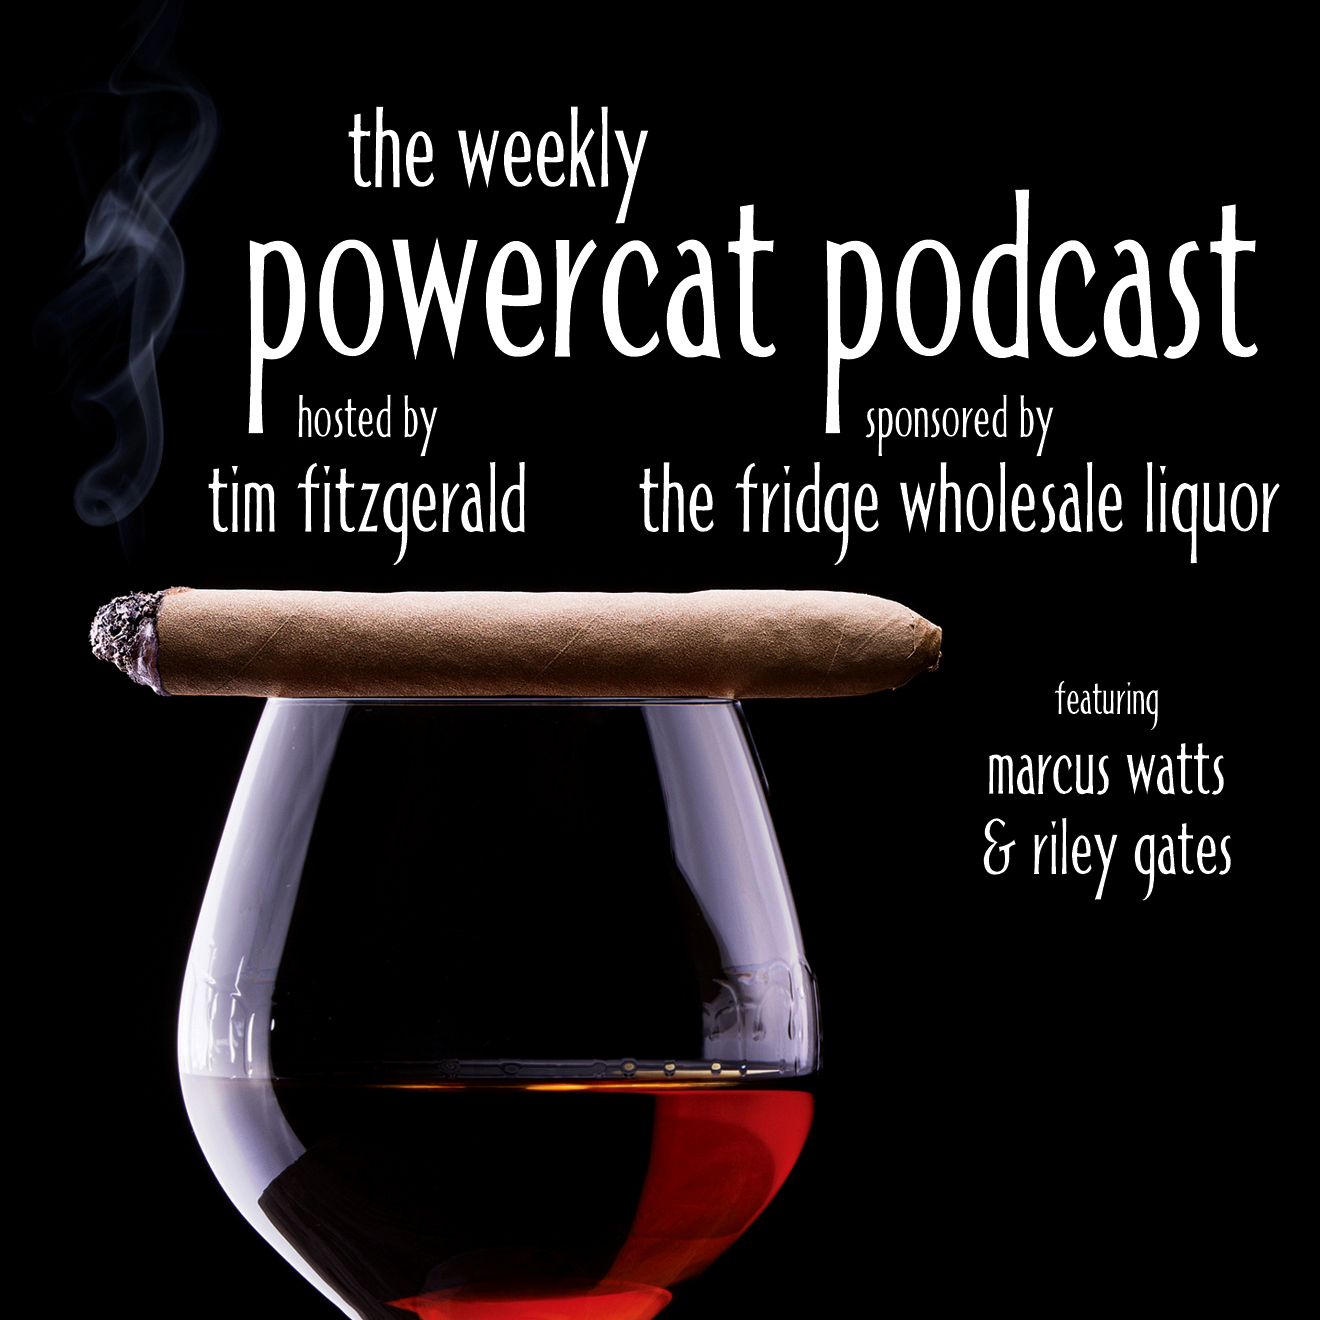 The Powercat Podcast 09.28.16